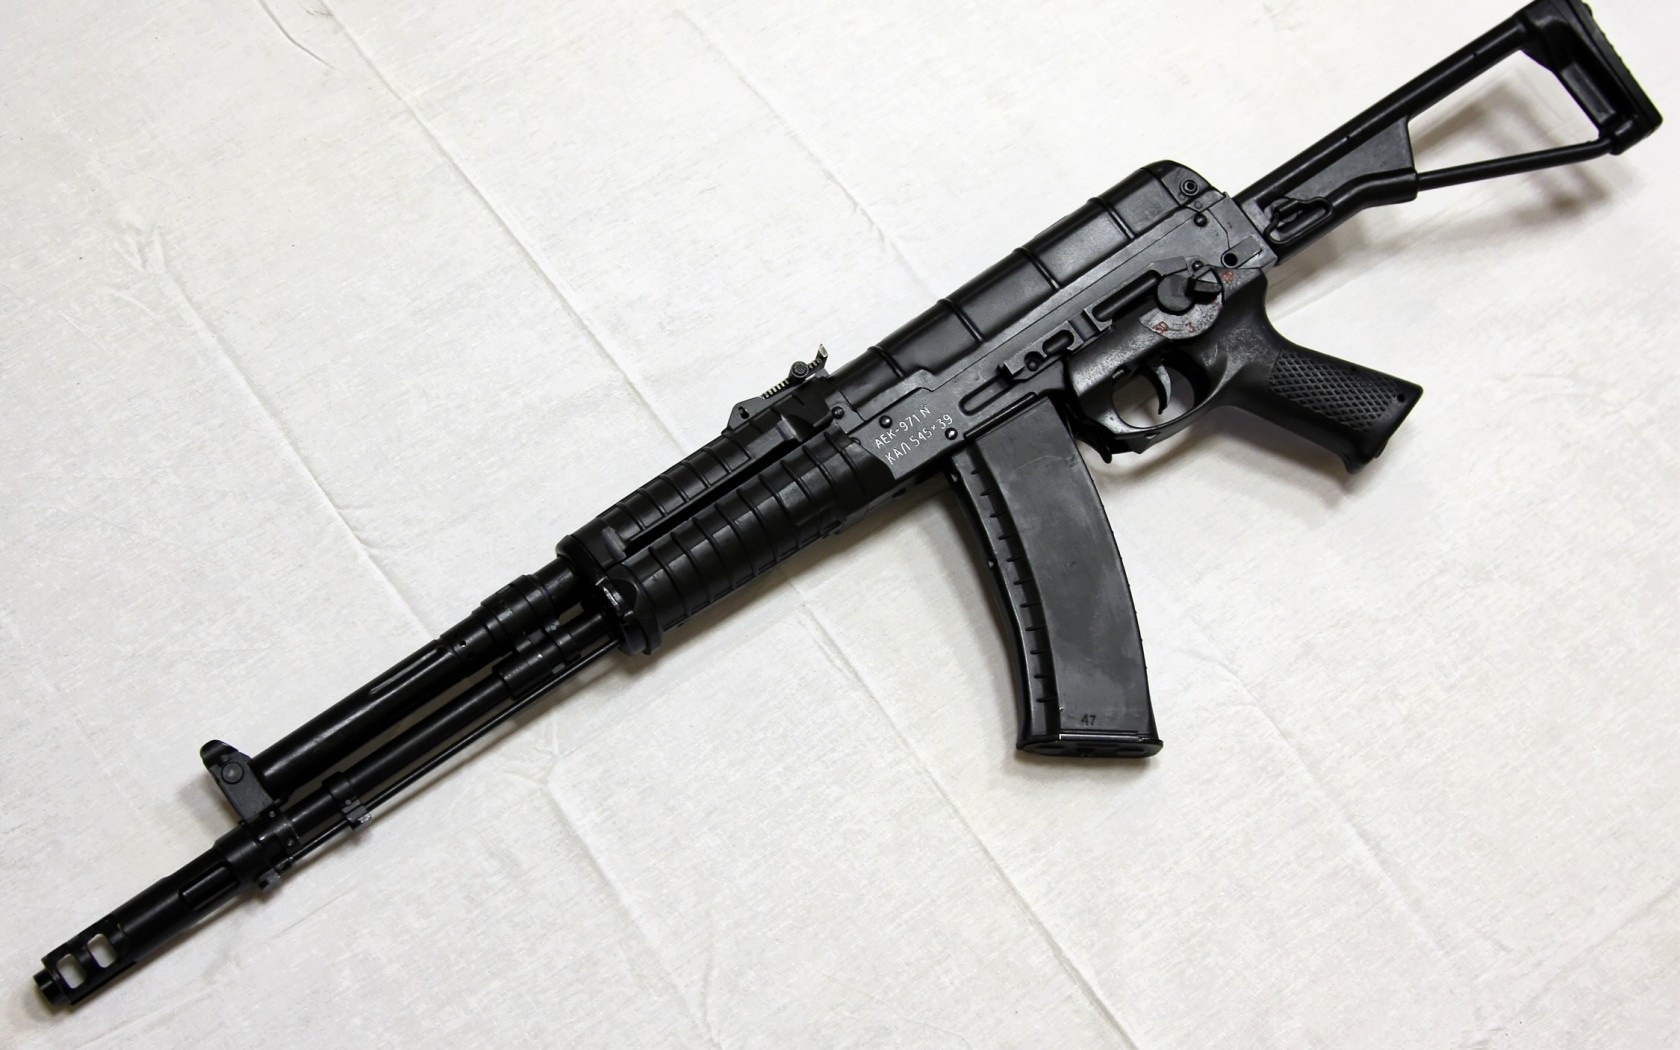 AEK-971 Rifle